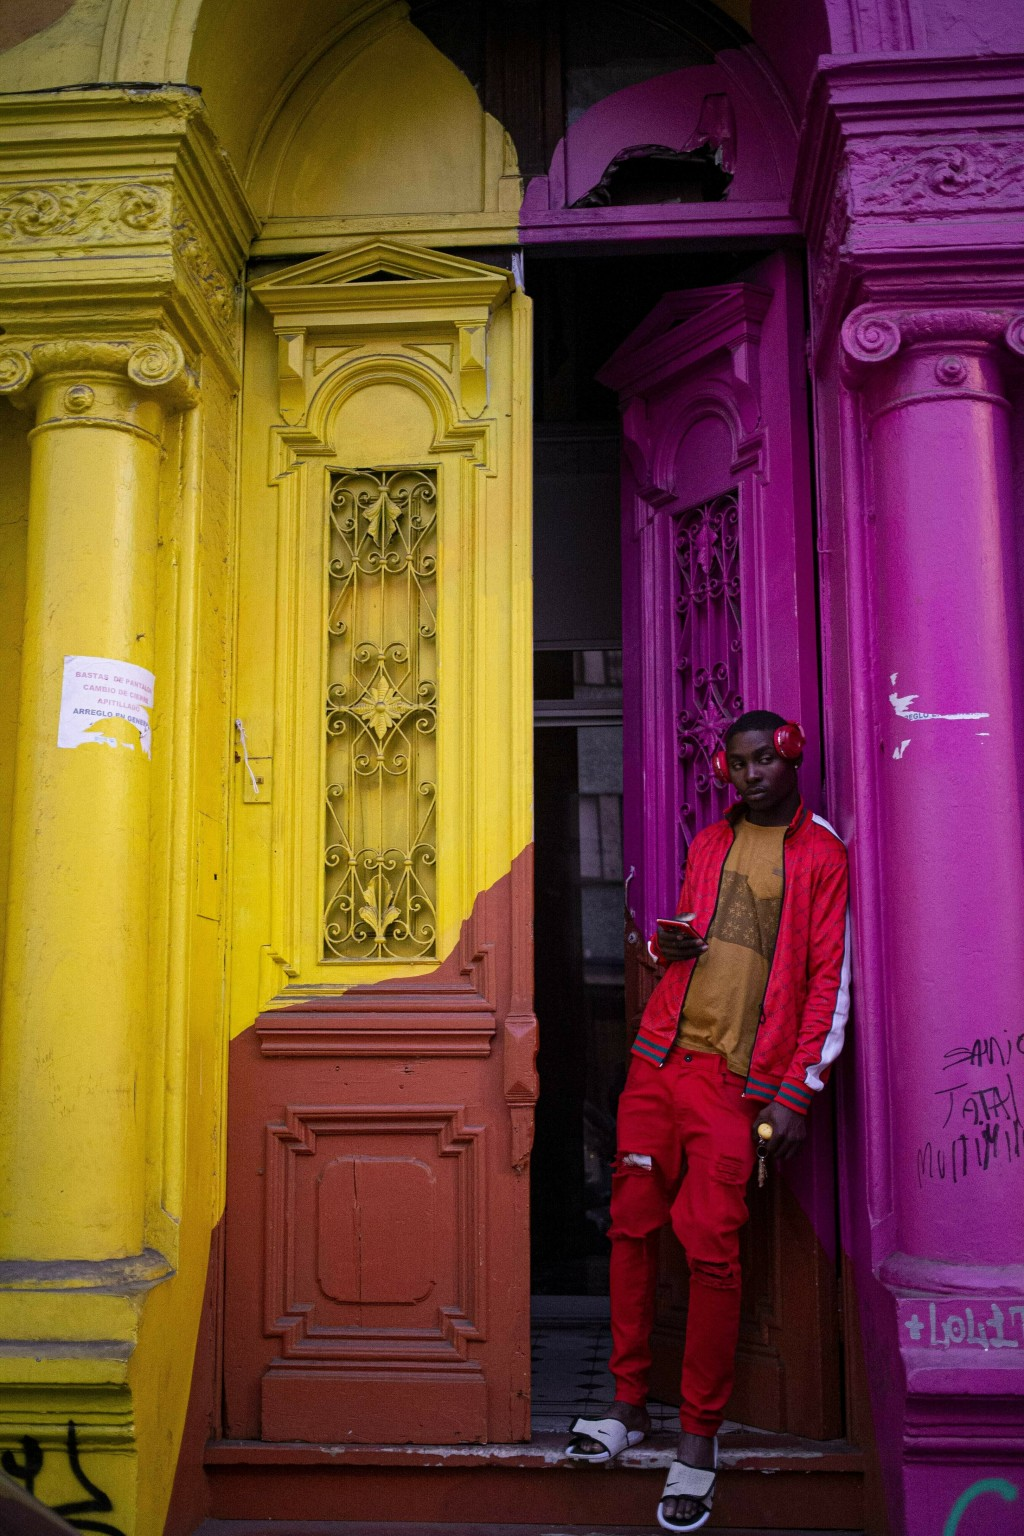 A migrant listens to music while standing in the doorway of an home in downtown Santiago, Chile, Saturday, June 22, 2019. (AP Photo/Esteban Felix)